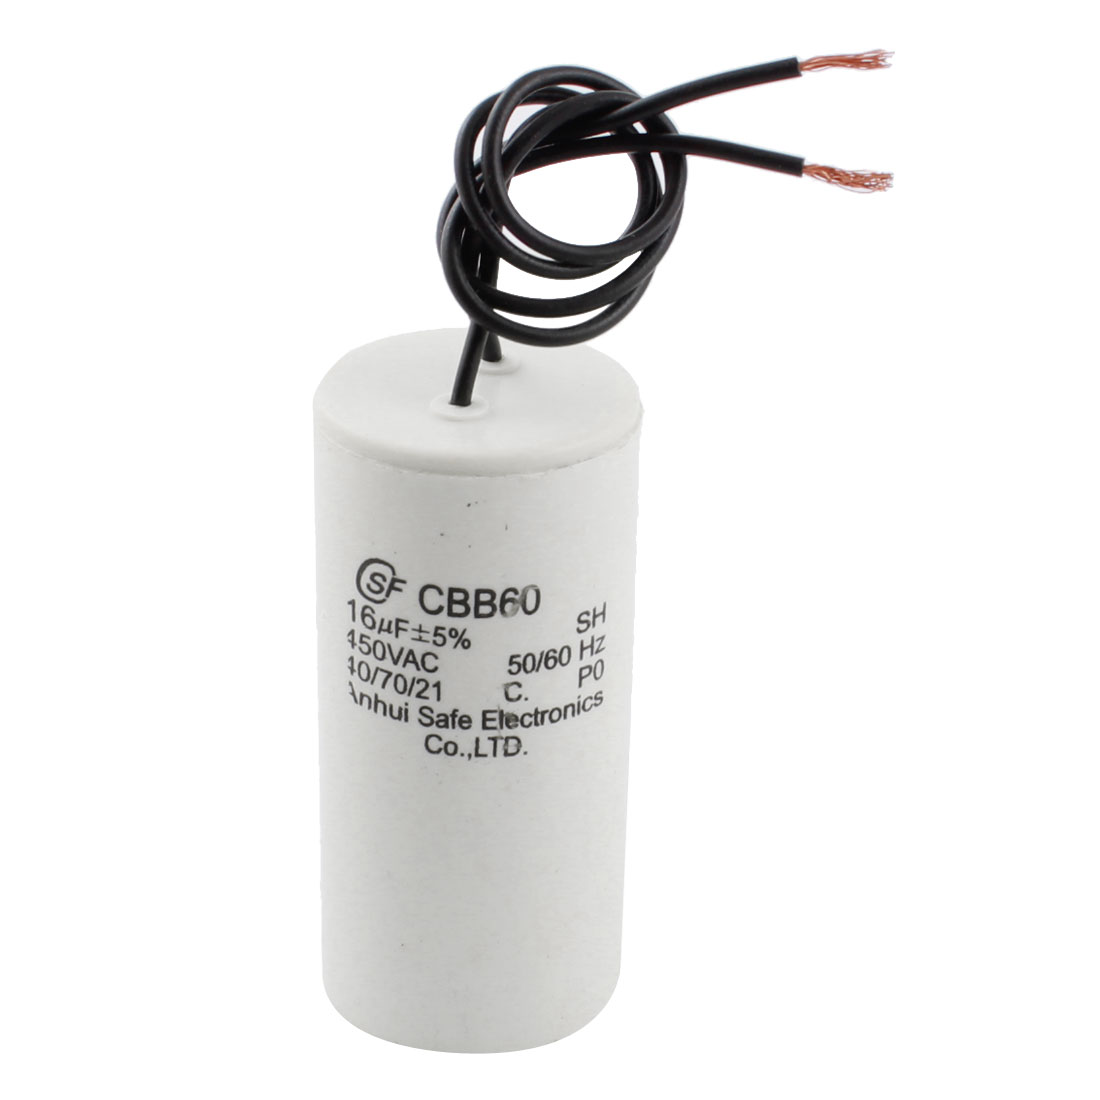 CBB60 AC 450V 16uf 5% Tolerance 2-Wired Polypropylene Film Air Conditioner Washing Machine Motor Run Capacitor